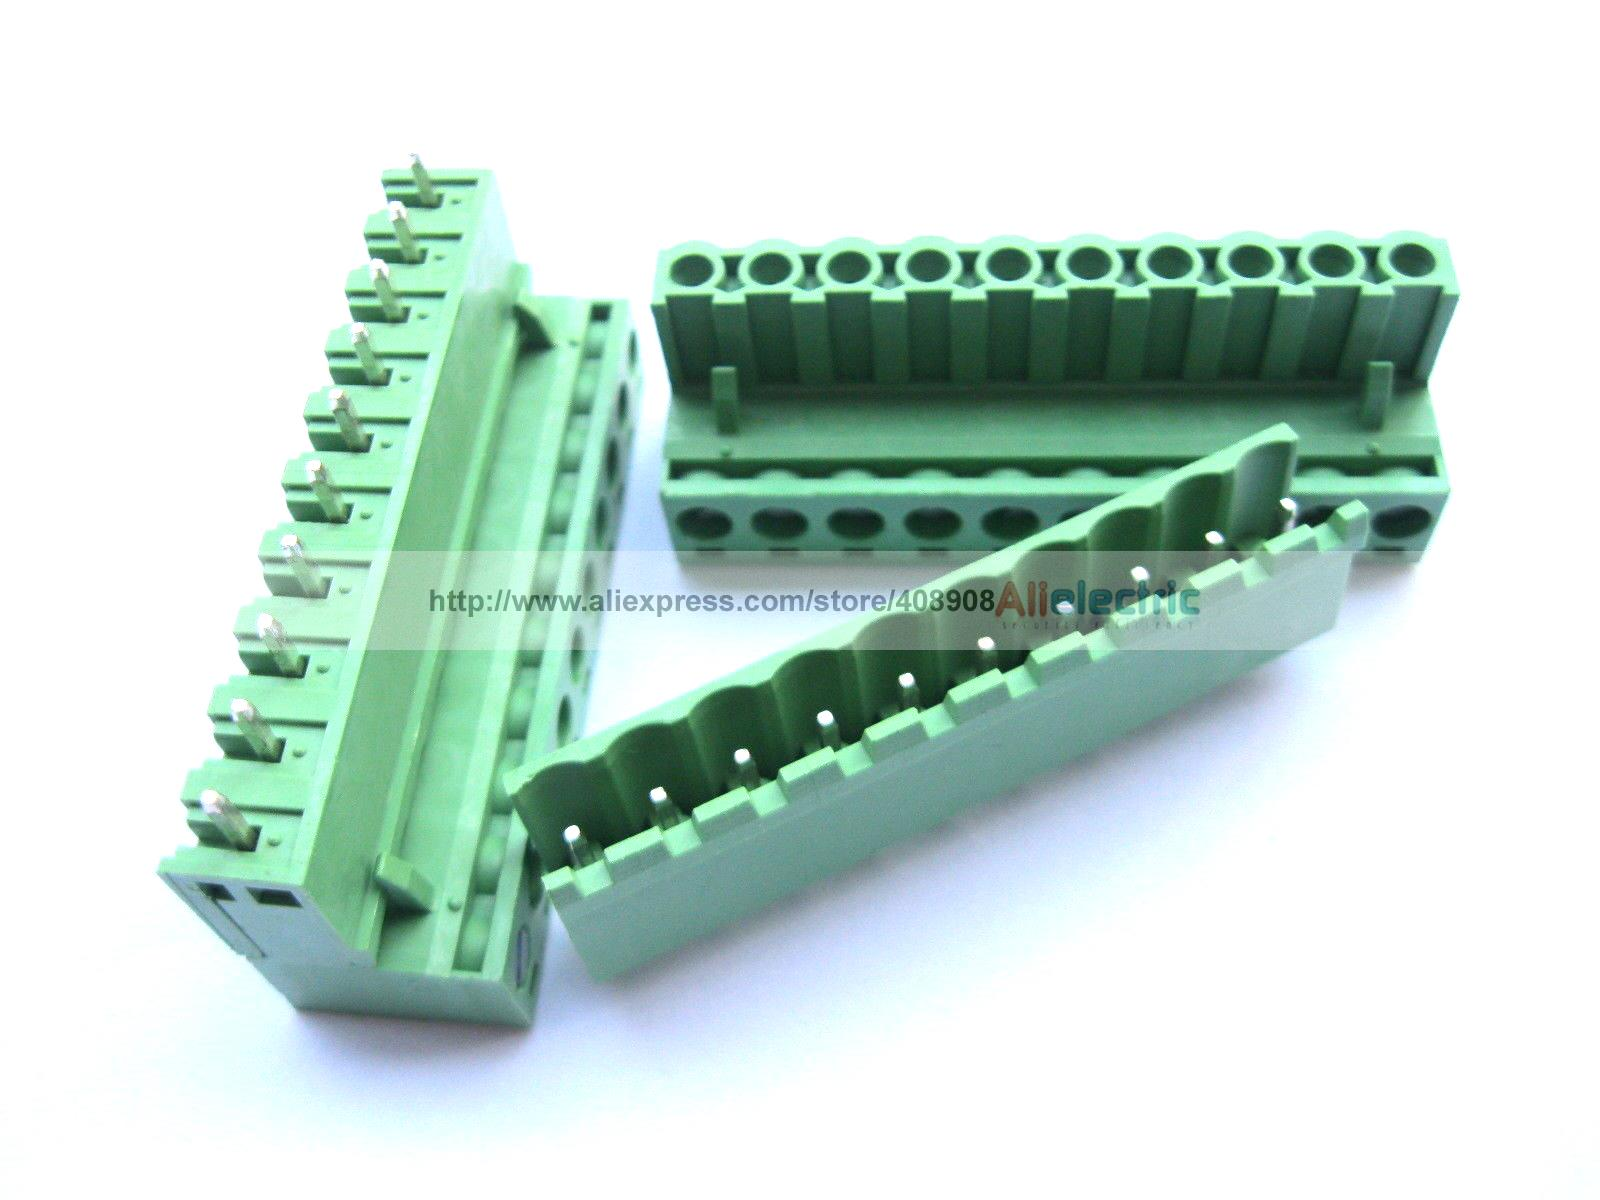 100 Pcs 5.08mm Straight 10 Pin Screw Terminal Block Connector Pluggable Green 100 pcs 5 08a 5 08mm straight 2 pin screw terminal block connector pluggable type